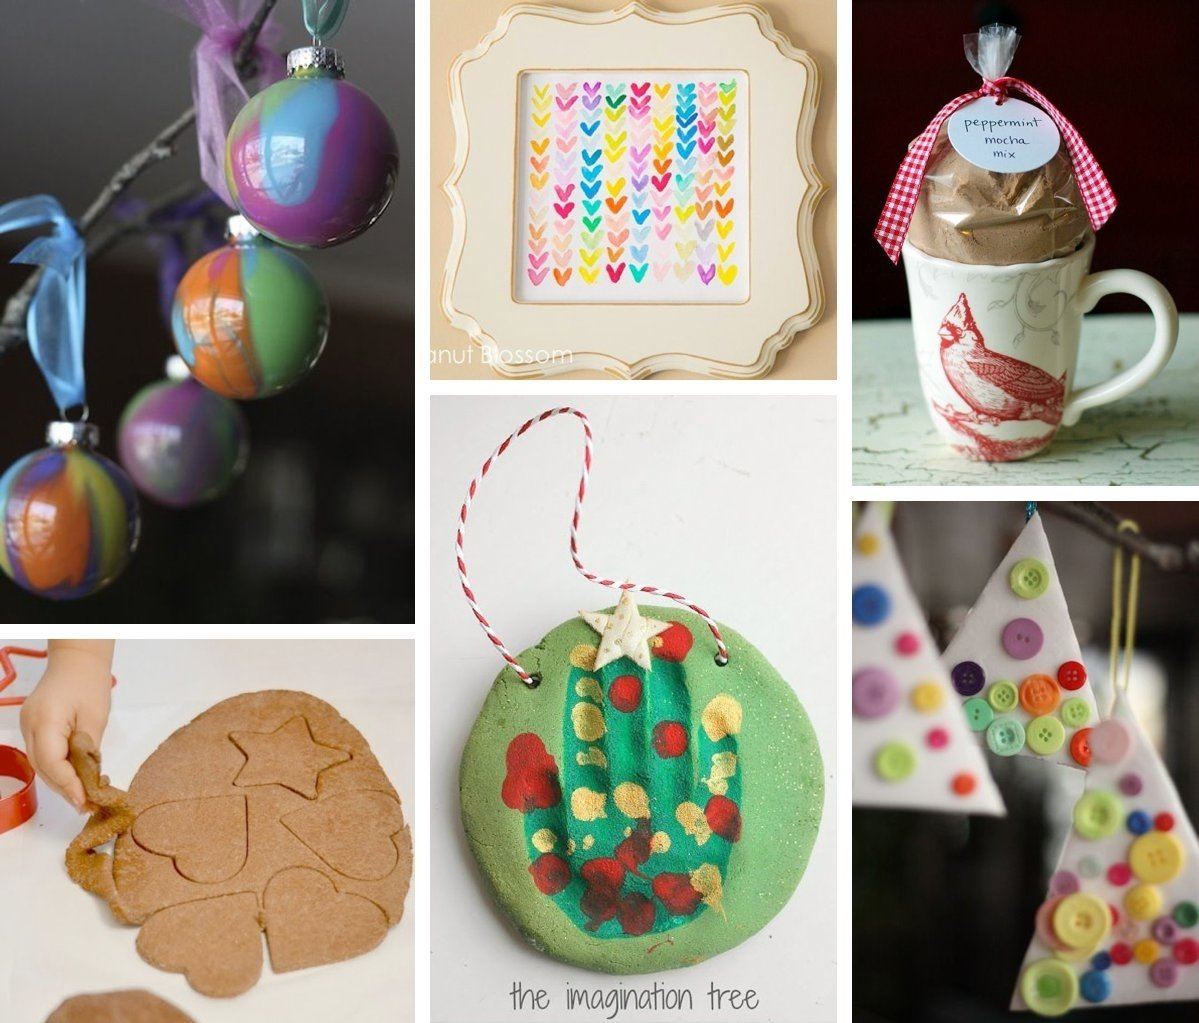 10 Most Popular Gift Ideas For Kids To Make diy holiday gifts kids can help make 4 2021